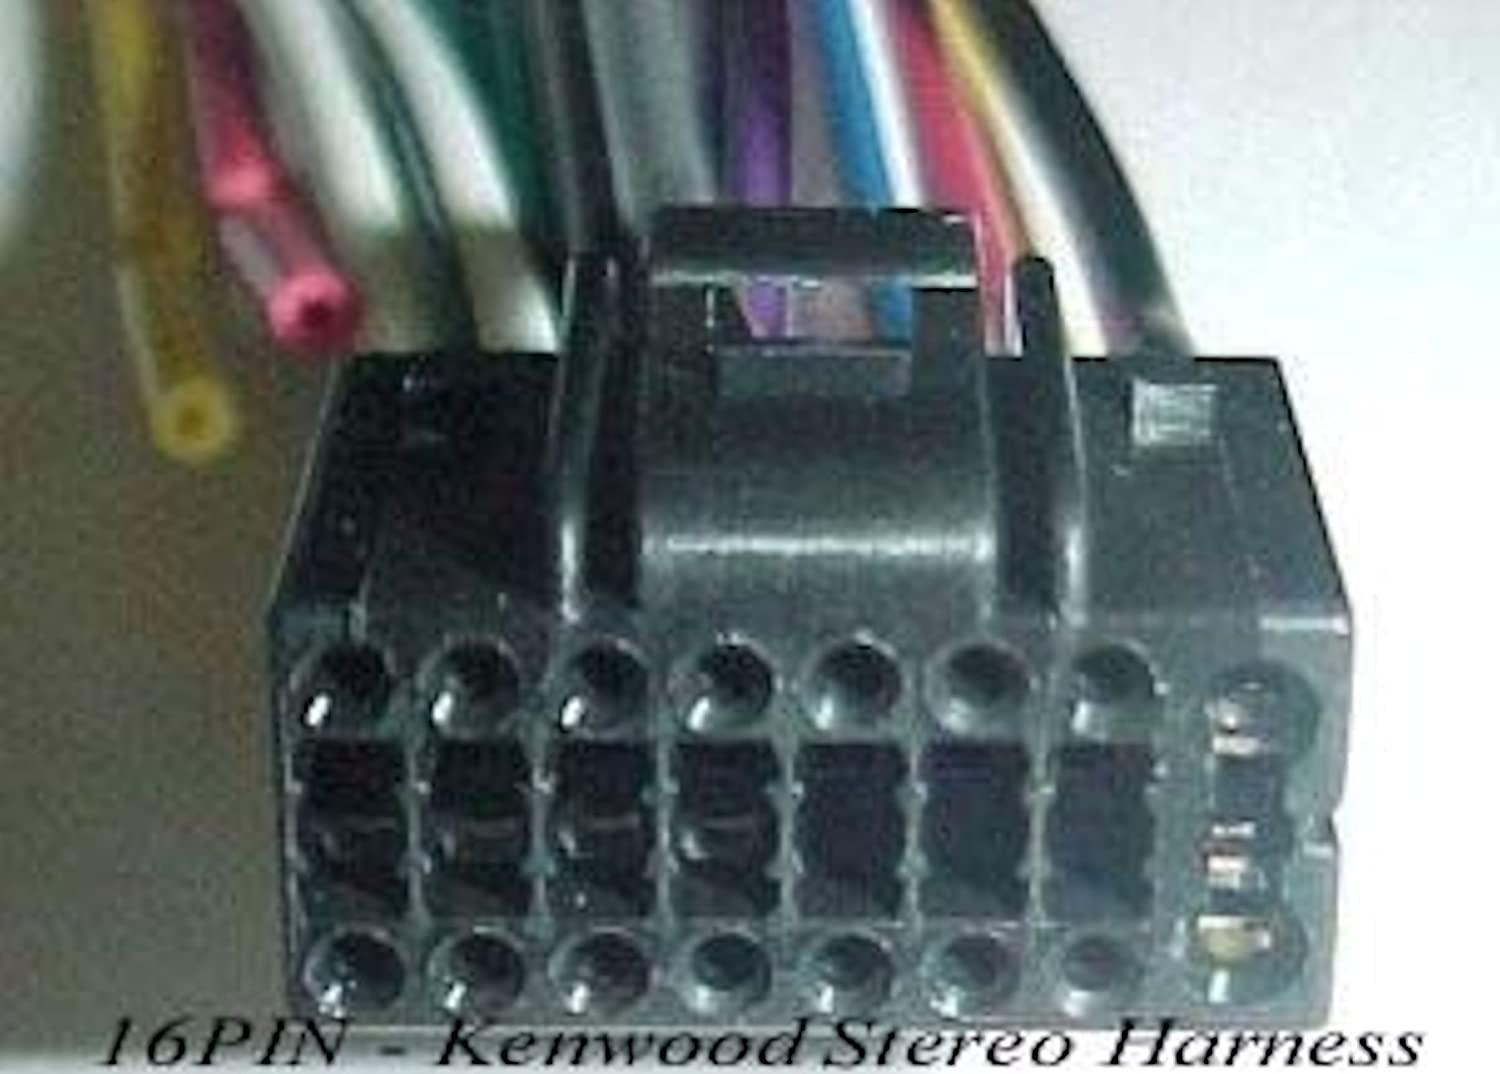 71x3HAisXfL._SL1500_ amazon com kenwood wire harness kdc 358u kdc bt558u kdc bt710hd kenwood kdc-355u wiring harness at bakdesigns.co